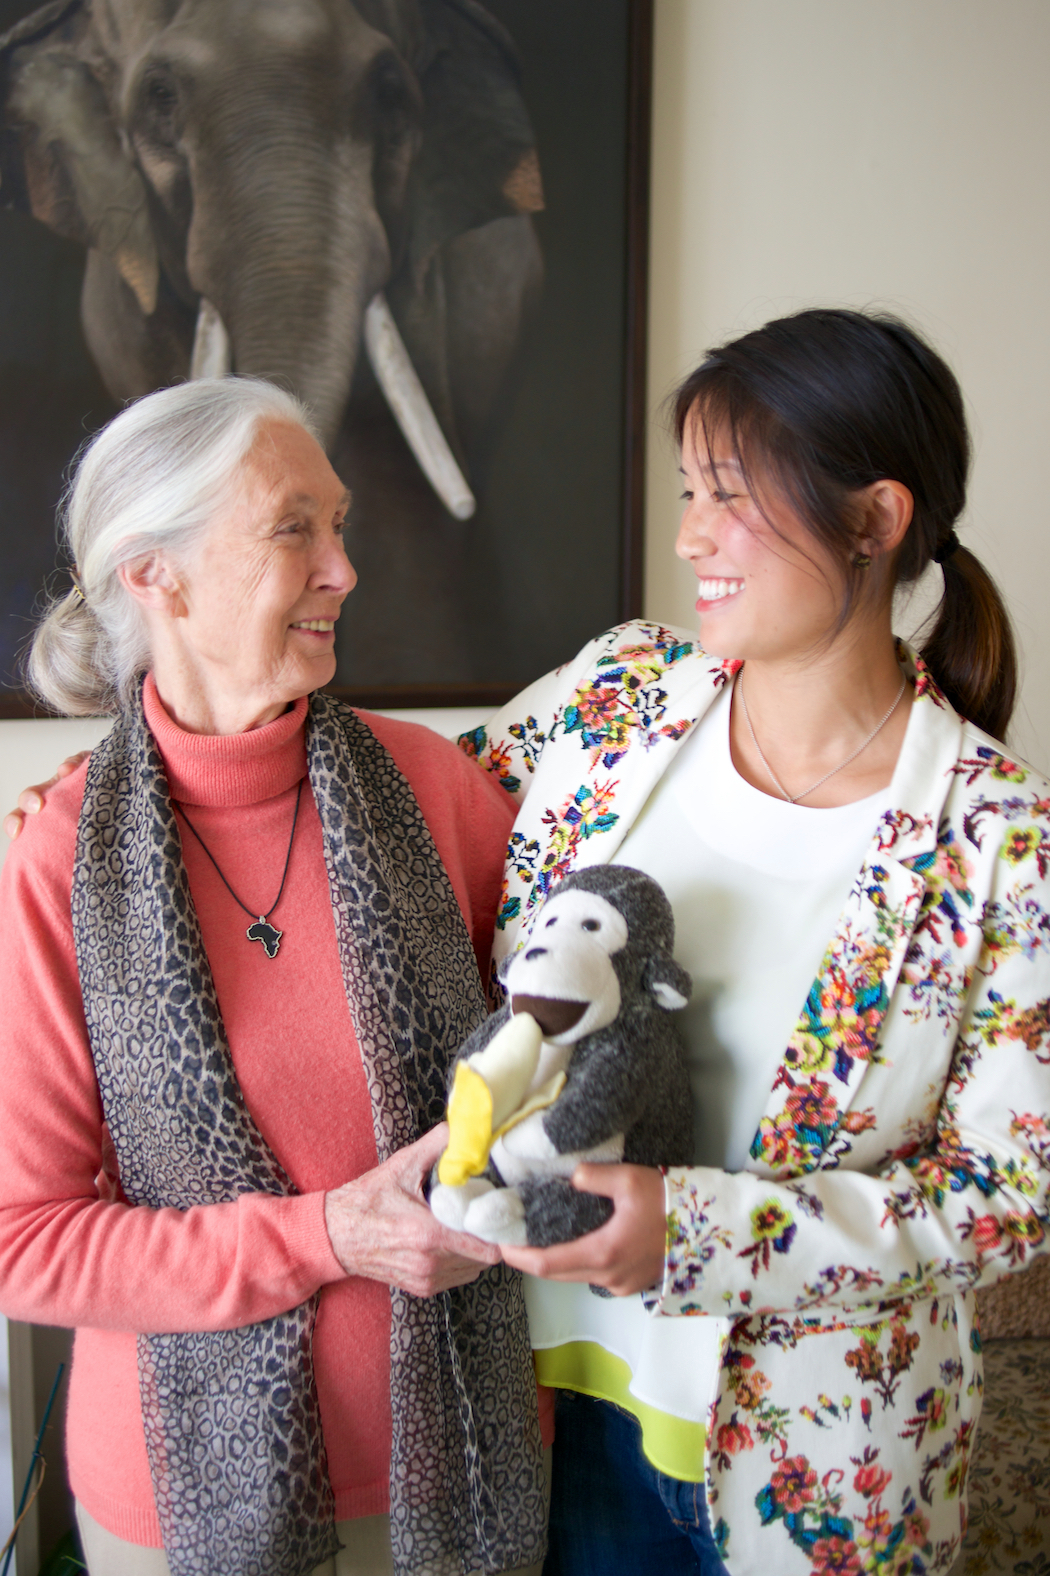 Laurel Chor and Jane Goodall